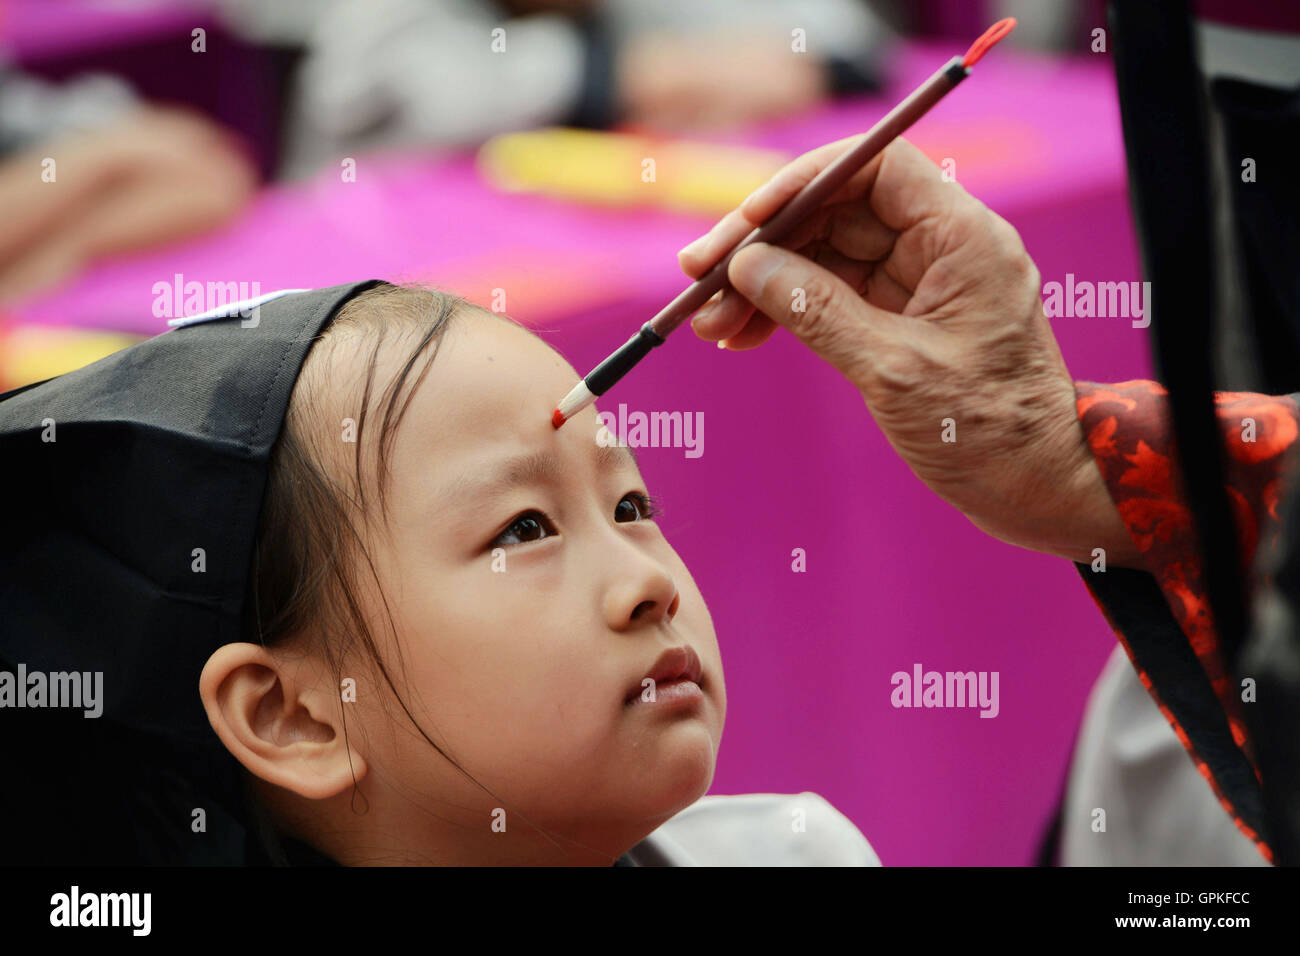 Qingzhou, Qingzhou, China. 5th Sep, 2016. An old scholar of traditional Chinese culture gives a red dot on pupil's - Stock Image